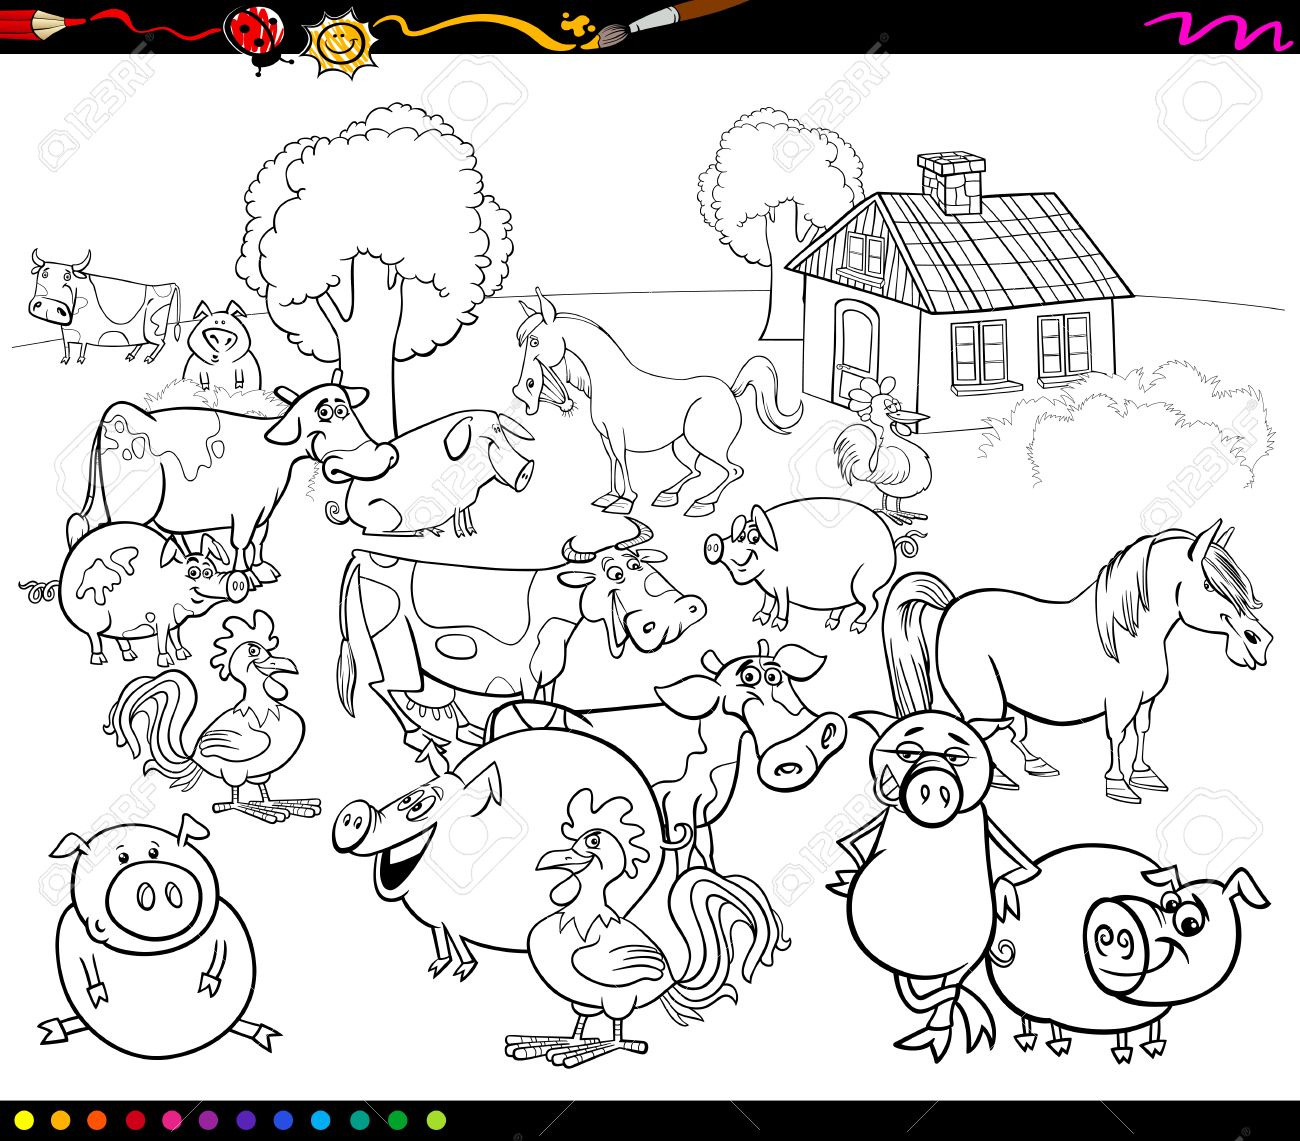 Black And White Cartoon Illustration Of Country Scene With Farm Animals For Coloring Book Stock Vector